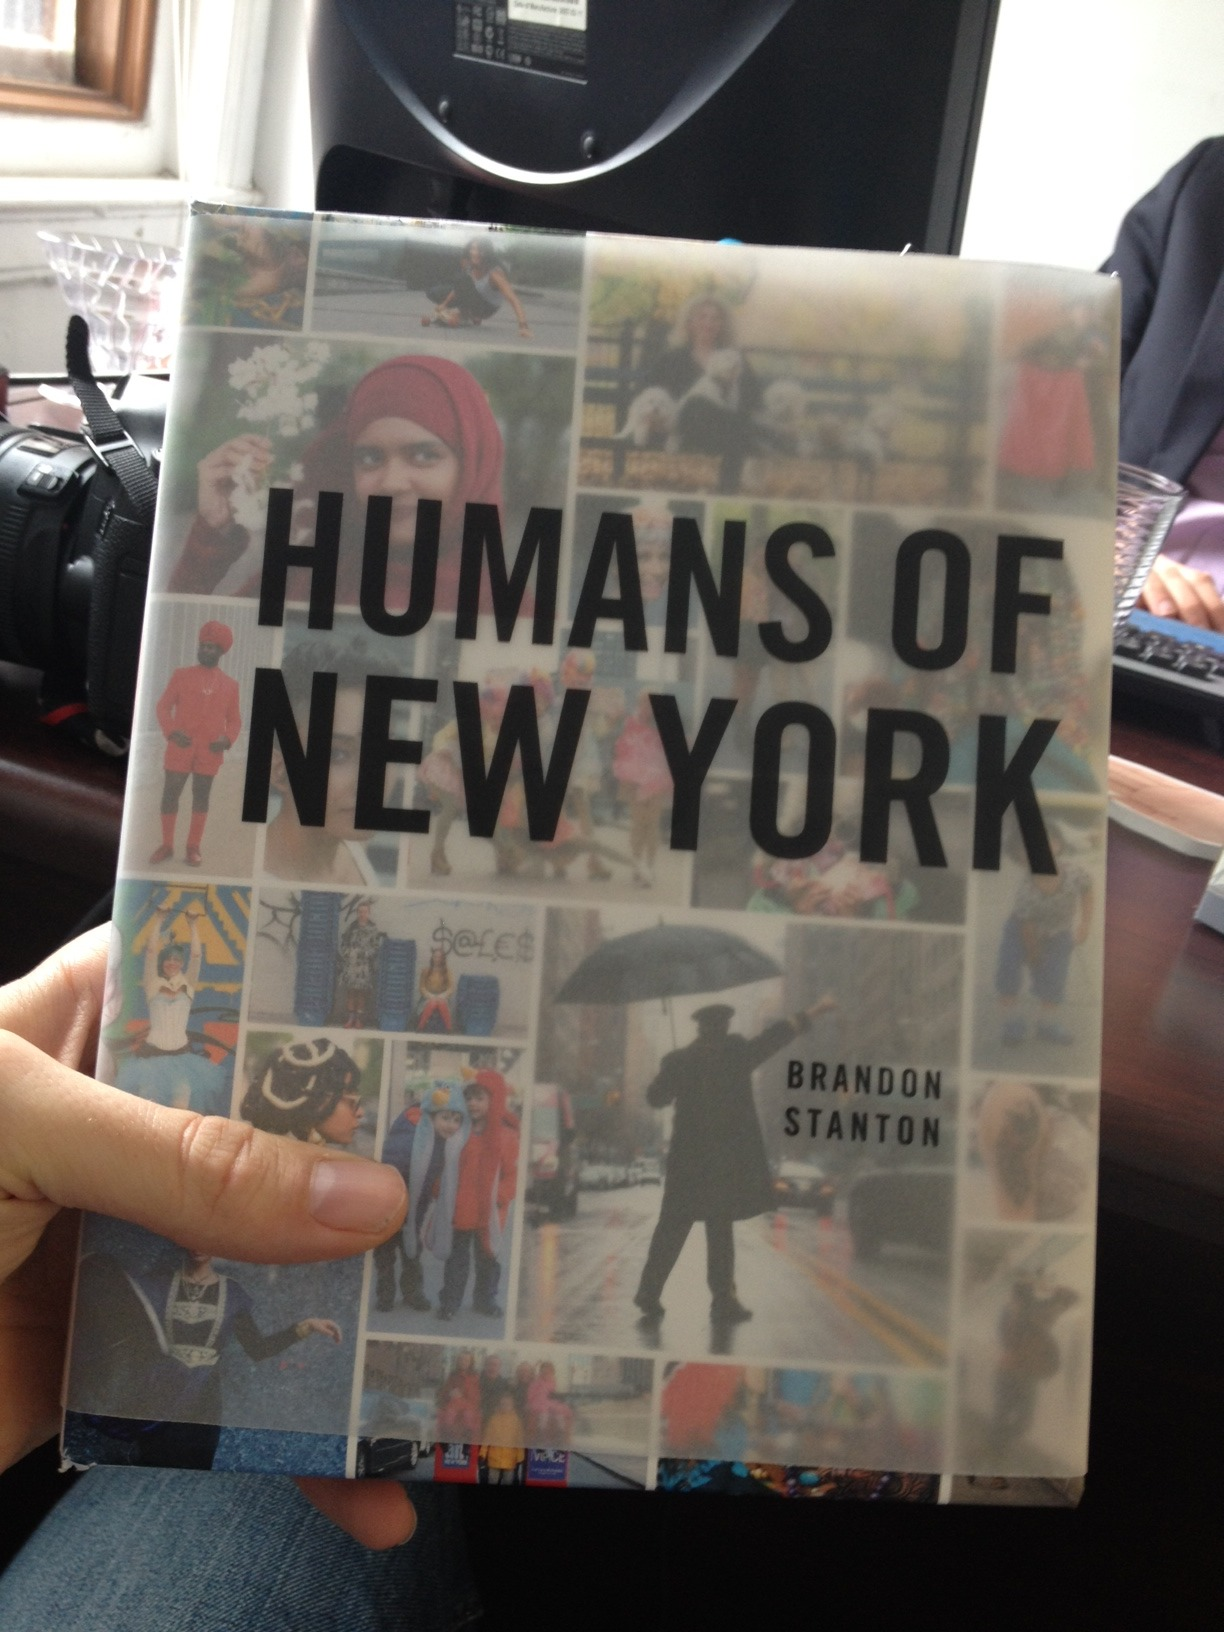 humansofnewyork:  Here's a rough mock-up of what the HONY book cover is going to look like. The actual HONY book will be a little bigger, and the jacket will come all the way to the edges, but you get the idea. I personally think it looks amazing. Actually teared up a bit when they gave it to me. It felt like I was holding a few years of my life in my hand.The book is coming out in 6 months, on October 15th. But do me a favor— if you KNOW you'll be getting one, and can spare $20, go ahead and preorder now. Bookstores order a long time in advance, so if we can demonstrate solid demand in these first few days, it will go a long way in determining the final success of the book.Historically, nationwide booksellers have been a bit skeptical of both photography and city-centric books. I know HONY is different. You know HONY is different. But it would help a ton if we could SHOW that HONY is different by turning in great presale numbers. All the work I've seen so far is really exciting, and I promise that I'm working overtime to make sure it's the best $20 that you'll ever spend. As always, thanks so much for your support, and here it is:Hardcover (I absolutely insisted.) 300+ beautifully designed pages. 400 total images. (320 of my favorites, 80 new)Complete with stories and captionsOnly $20.AMAZON: http://amzn.to/10sbtW5BARNES AND NOBLE: http://bit.ly/YOoQCY  Buy this book!